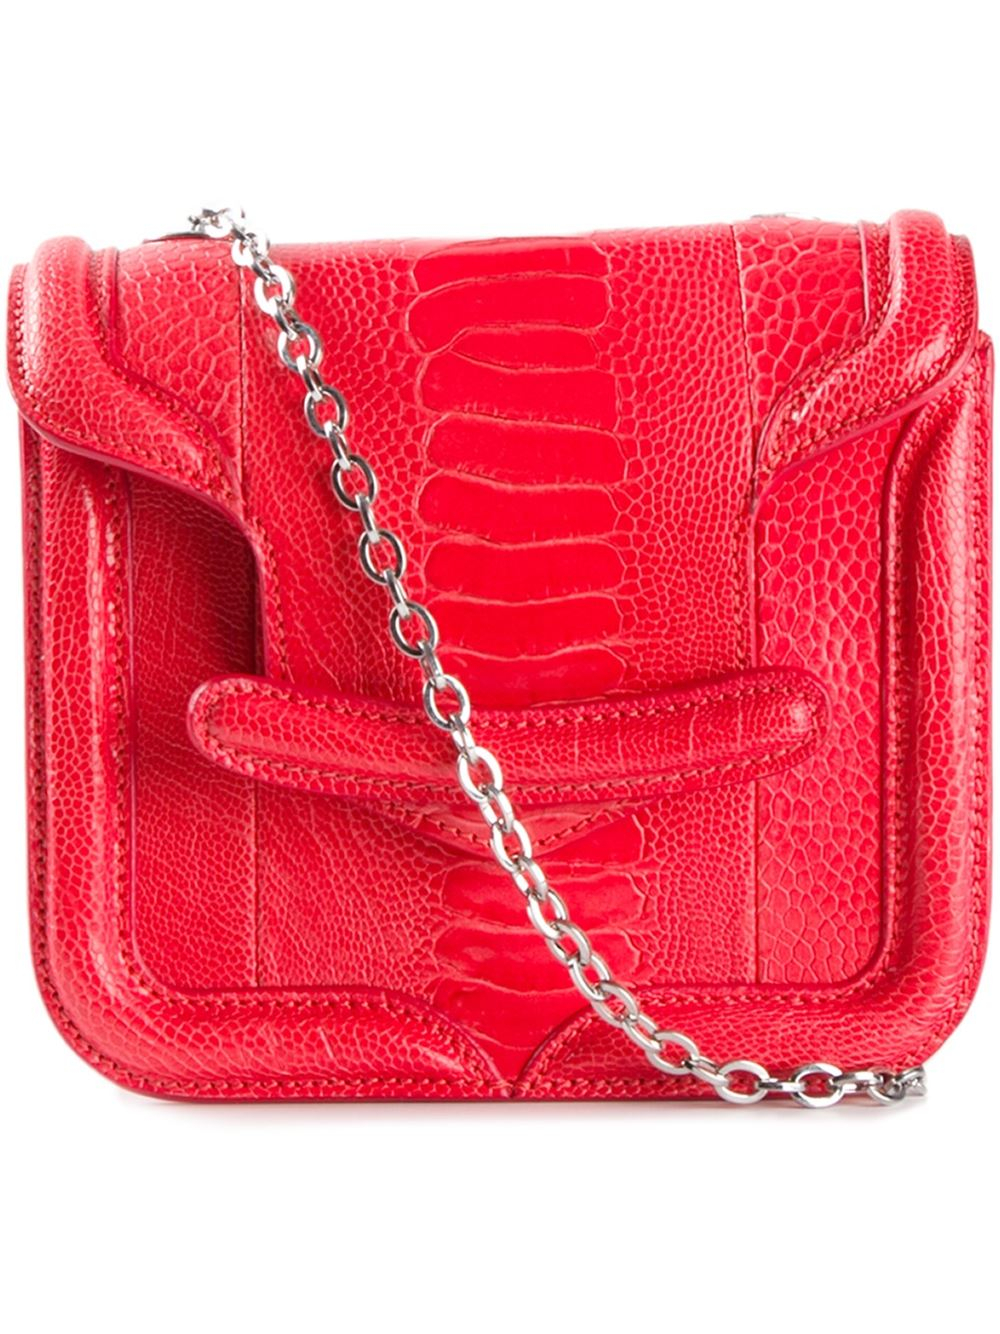 Alexander mcqueen Mini 'Heroine' Shoulder Bag in Red | Lyst